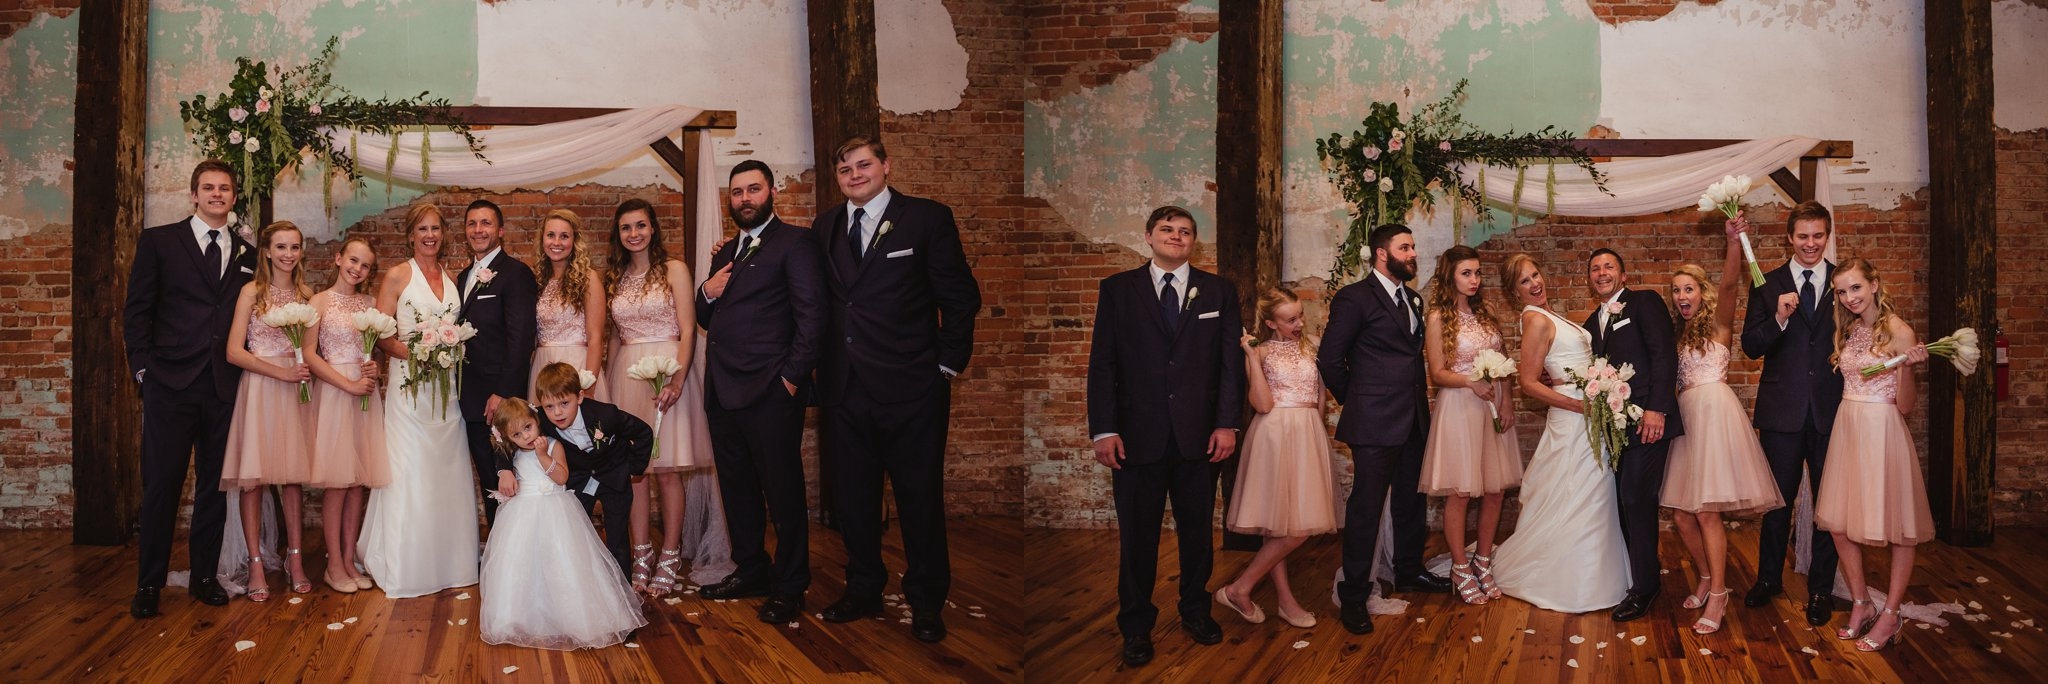 The bride and groom pose for Rose Trail Images with their kids and granddkids after their wedding ceremony at Cross and Main in Youngsville, NC.